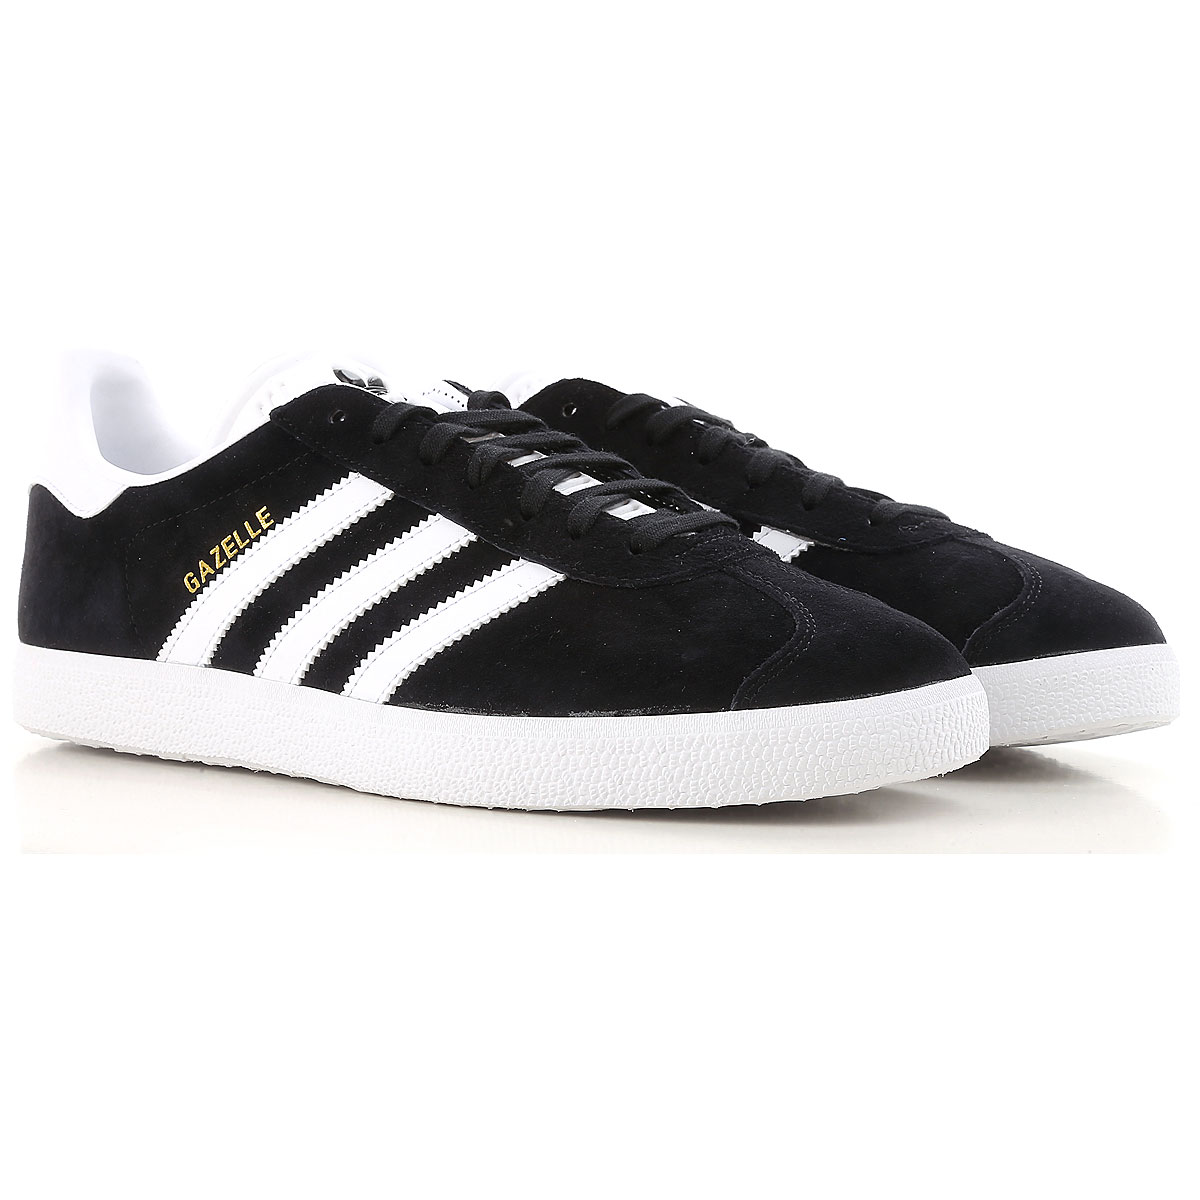 Image of Adidas Sneakers for Men, Gazelle, Black, Suede leather, 2017, US 7 - UK 6 - EUR 40 US 7.5 - UK 7 - EU 40.5 US 7 - UK 6.5 - EU 40 US 8 - UK 7.5 - EU 41 US 8 1/2 - UK 8 - EU 42 US 9.5 - UK 9 - EU 43 US 10 - UK 9 1/2 - EU 44 US 11 - UK 10 1/2 - EU 45